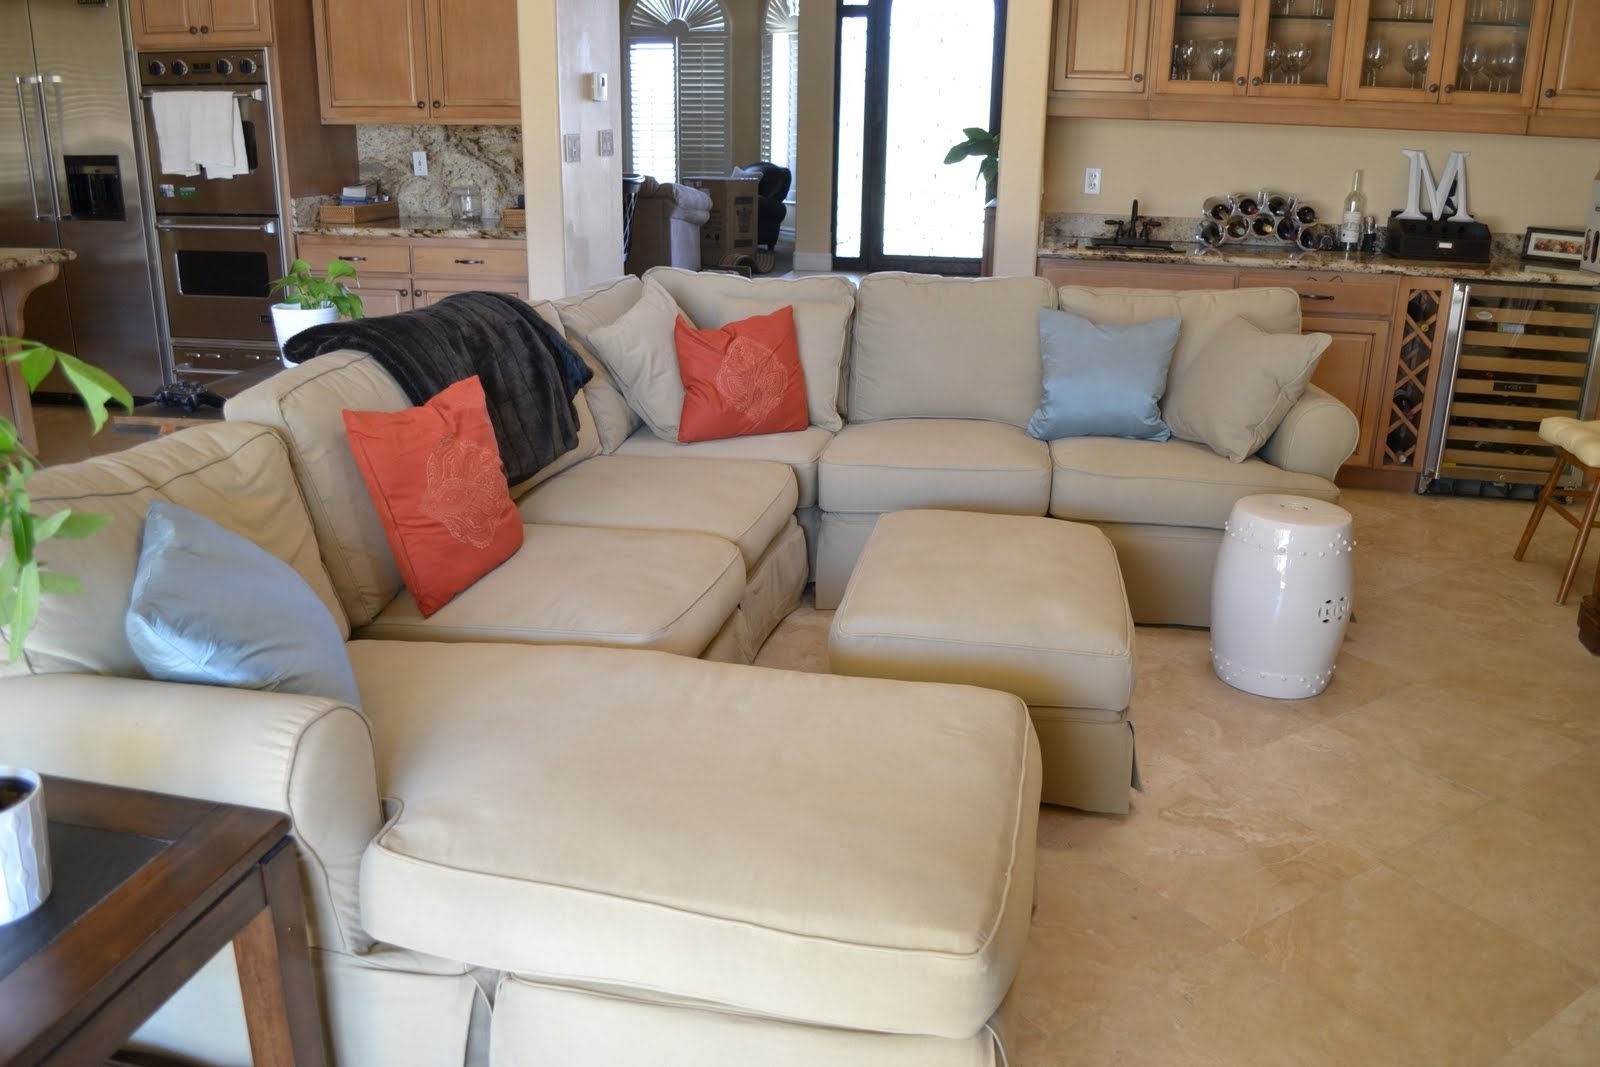 Widely Used Jcpenney Sectional Sofas For 3 Piece Sectional Slipcovers — Cabinets, Beds, Sofas And (View 2 of 20)